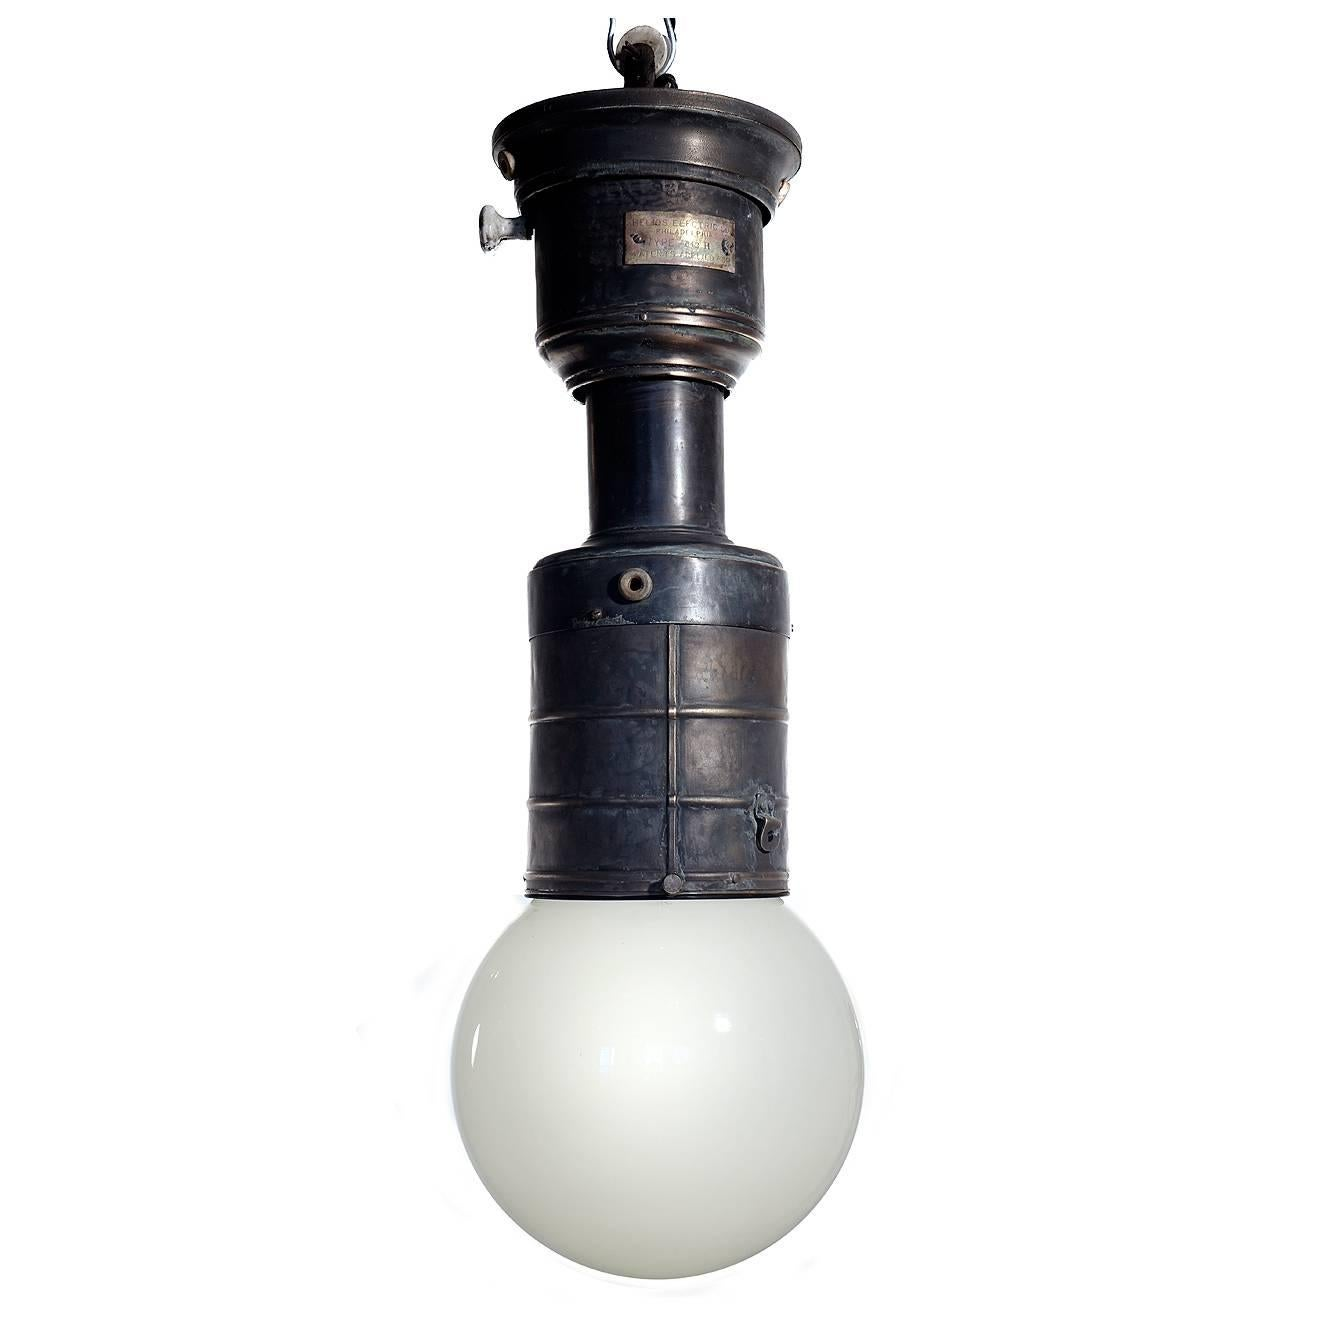 Rare and important early train car hanging light fixture for sale at 1stdibs